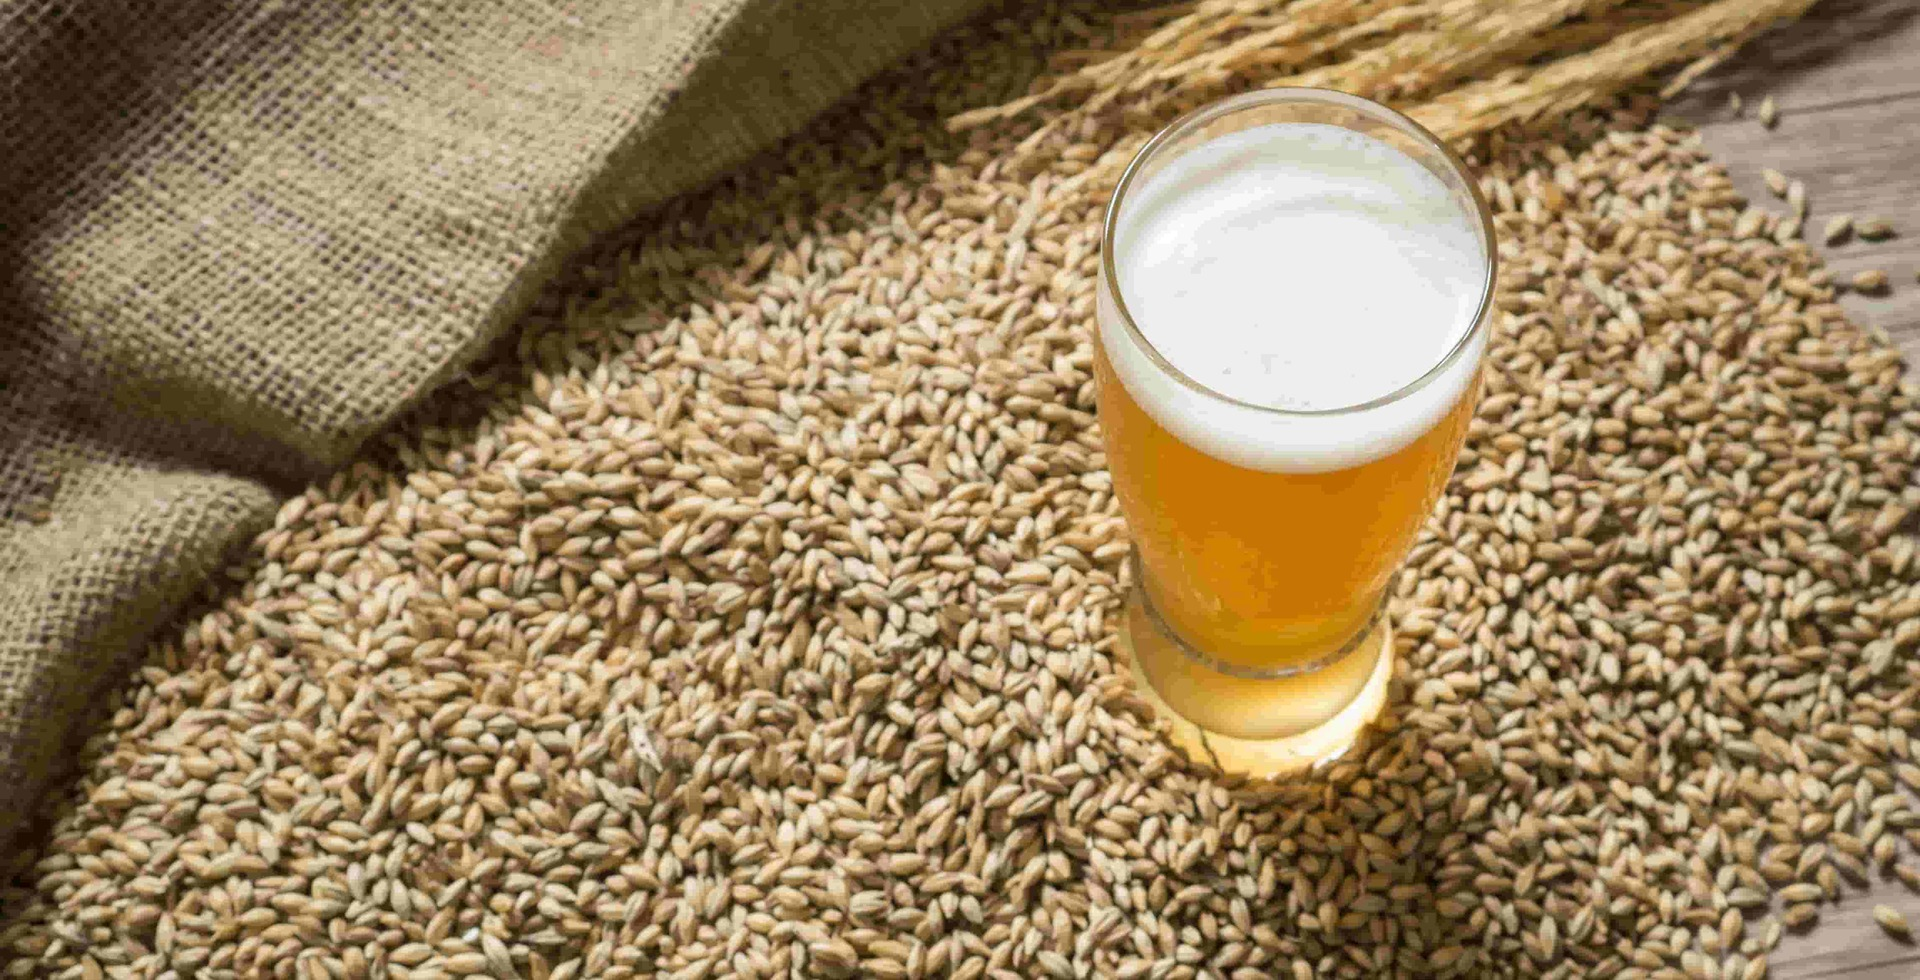 Probiotic Beer – a novel fermented food of the future?